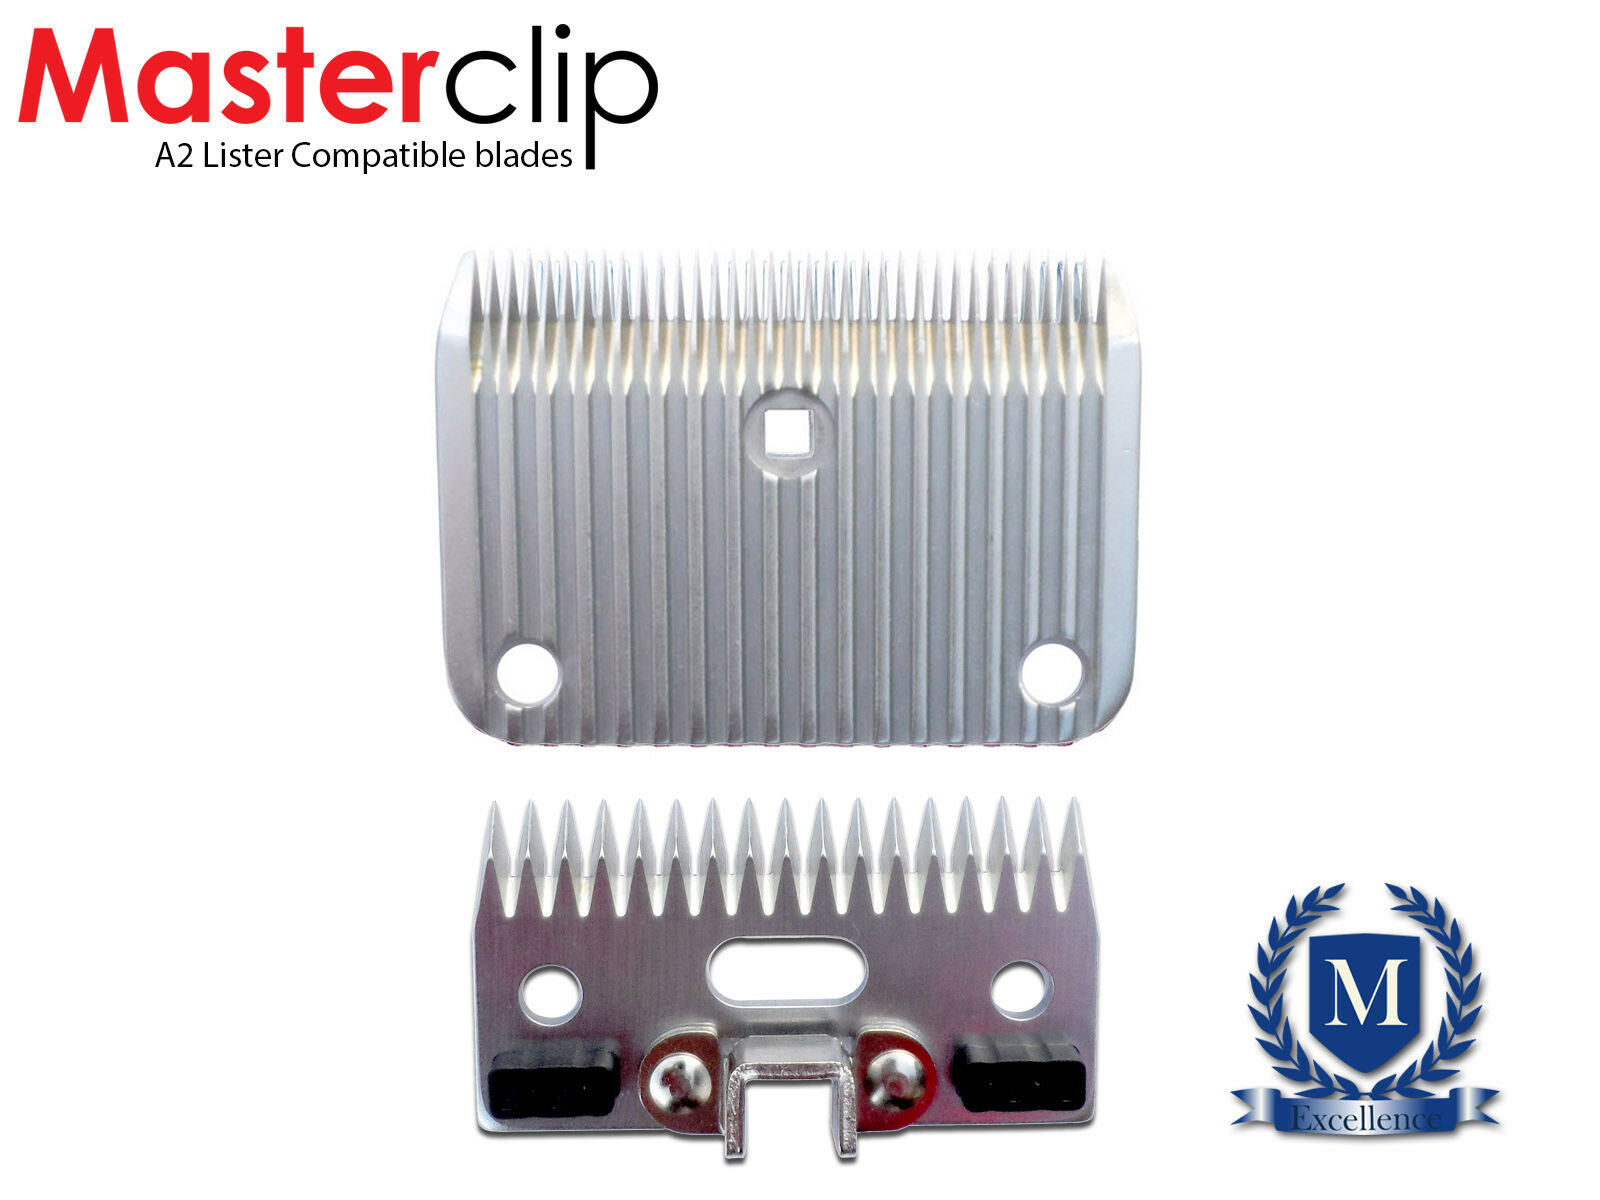 Horse Clipper Blades Masterclip Clipping  Compatible with Lister A2   hot